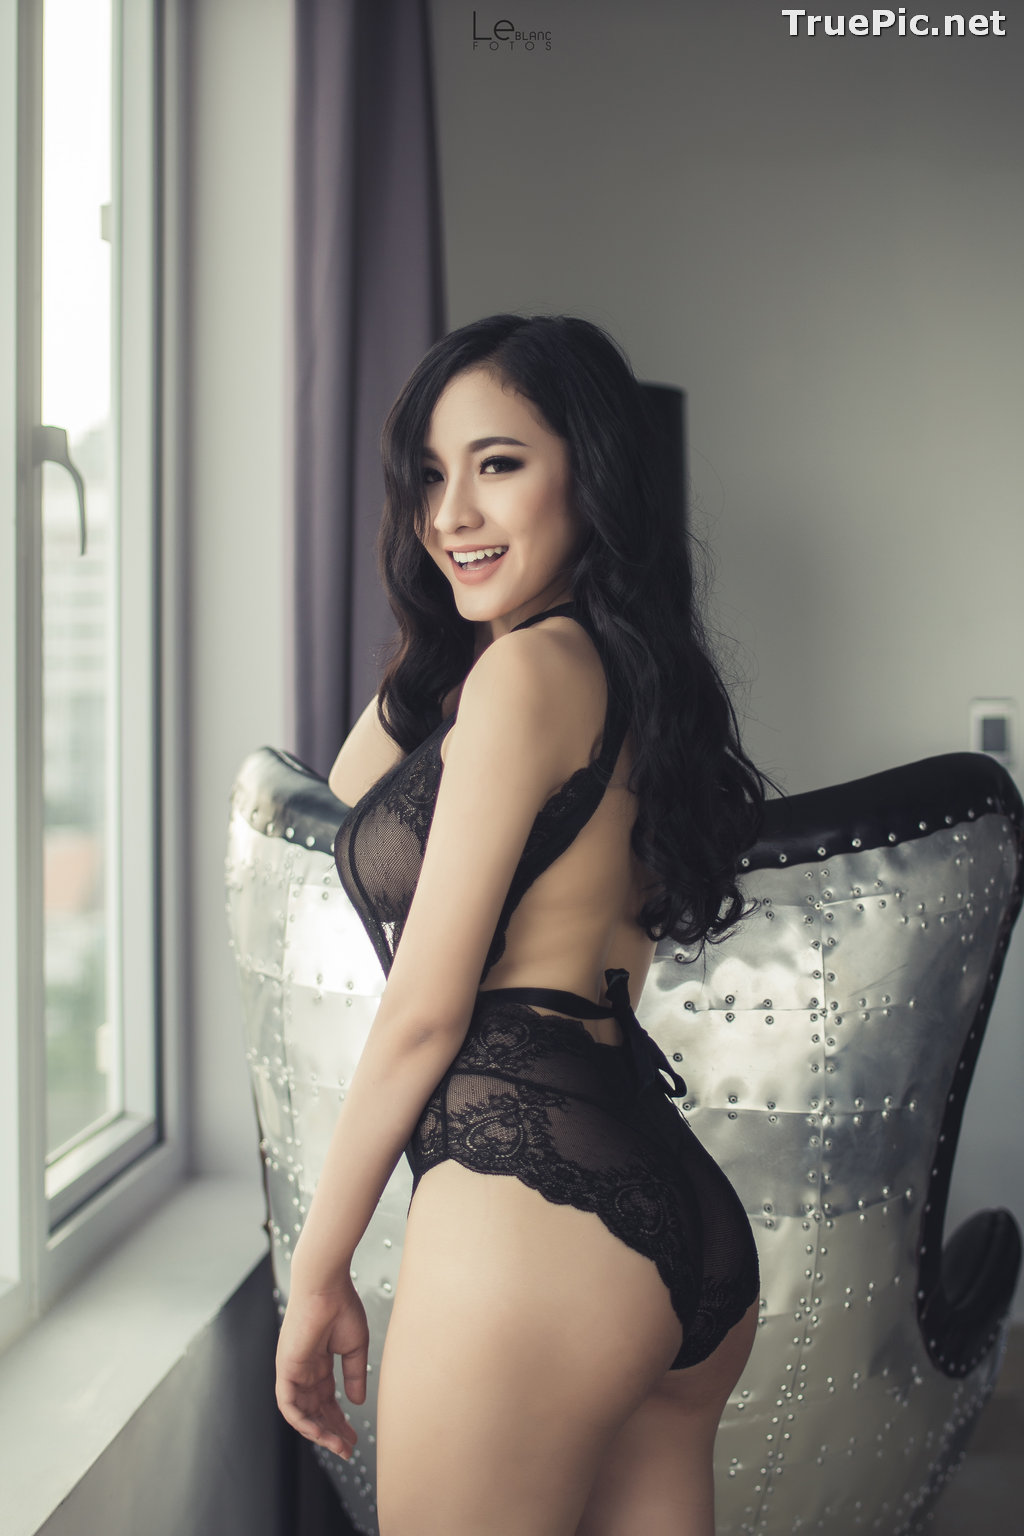 Image Vietnamese Beauties With Lingerie and Bikini – Photo by Le Blanc Studio #12 - TruePic.net - Picture-3